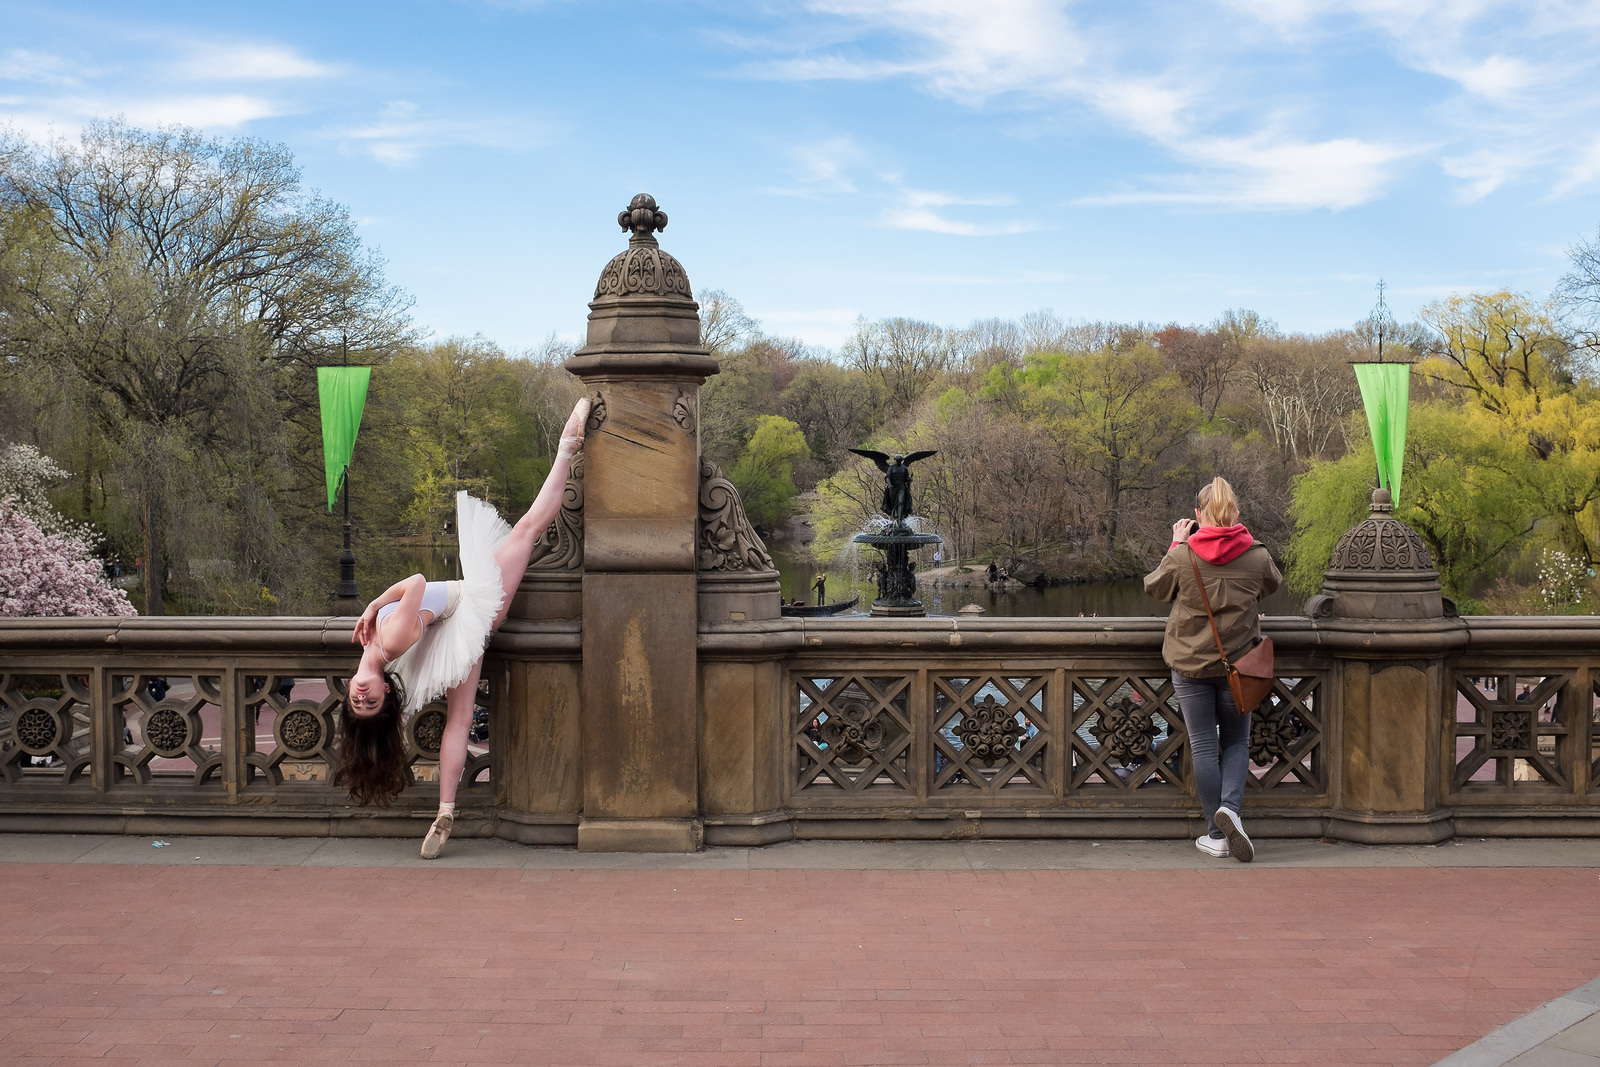 """Tough crowd"" April, 2015, Central Park, NY Fujifilm X100s, f/8, 1/240, ISO 400"